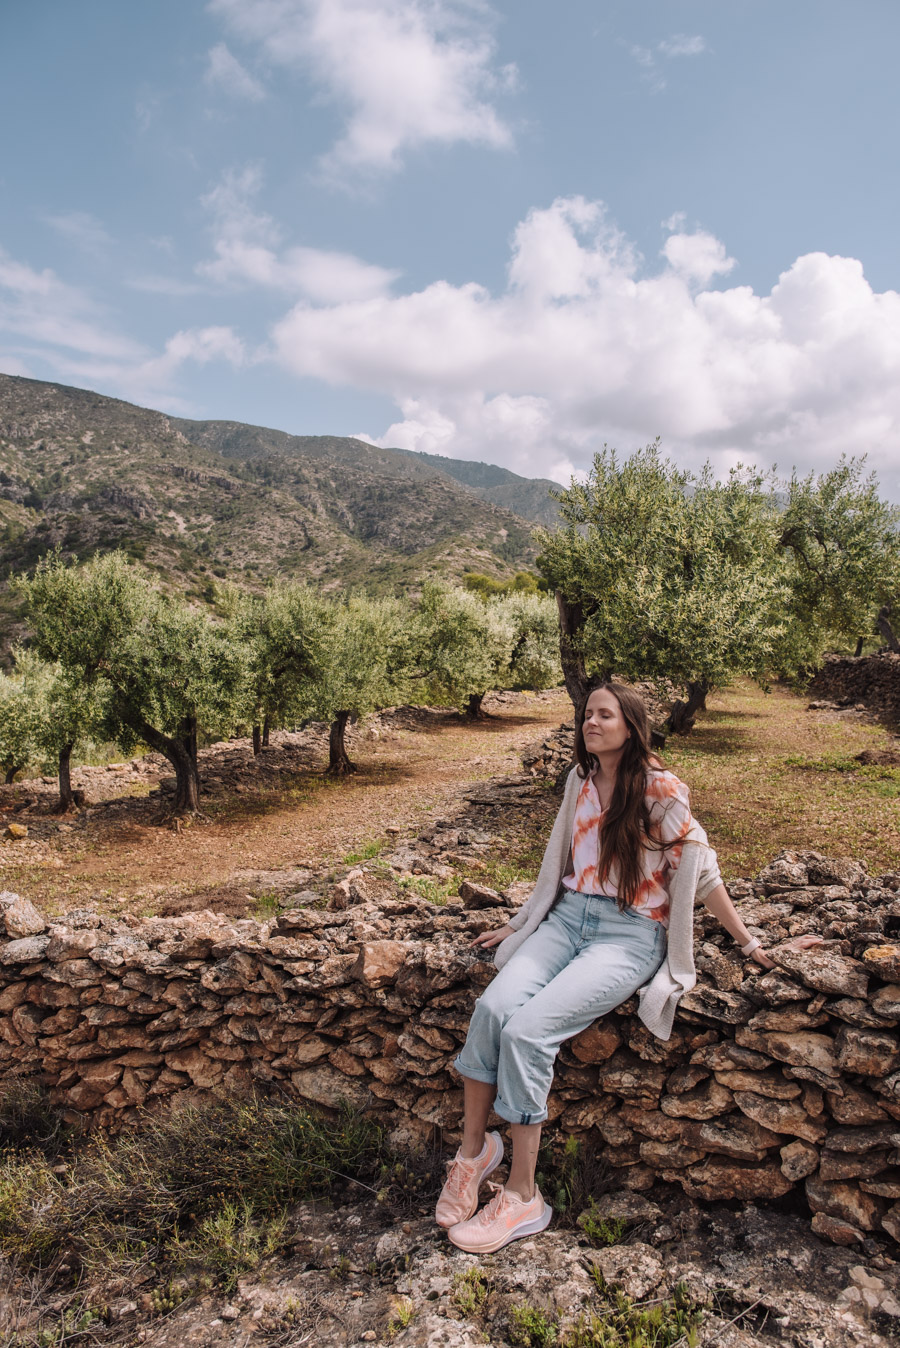 Staying on an olive farm in Spain